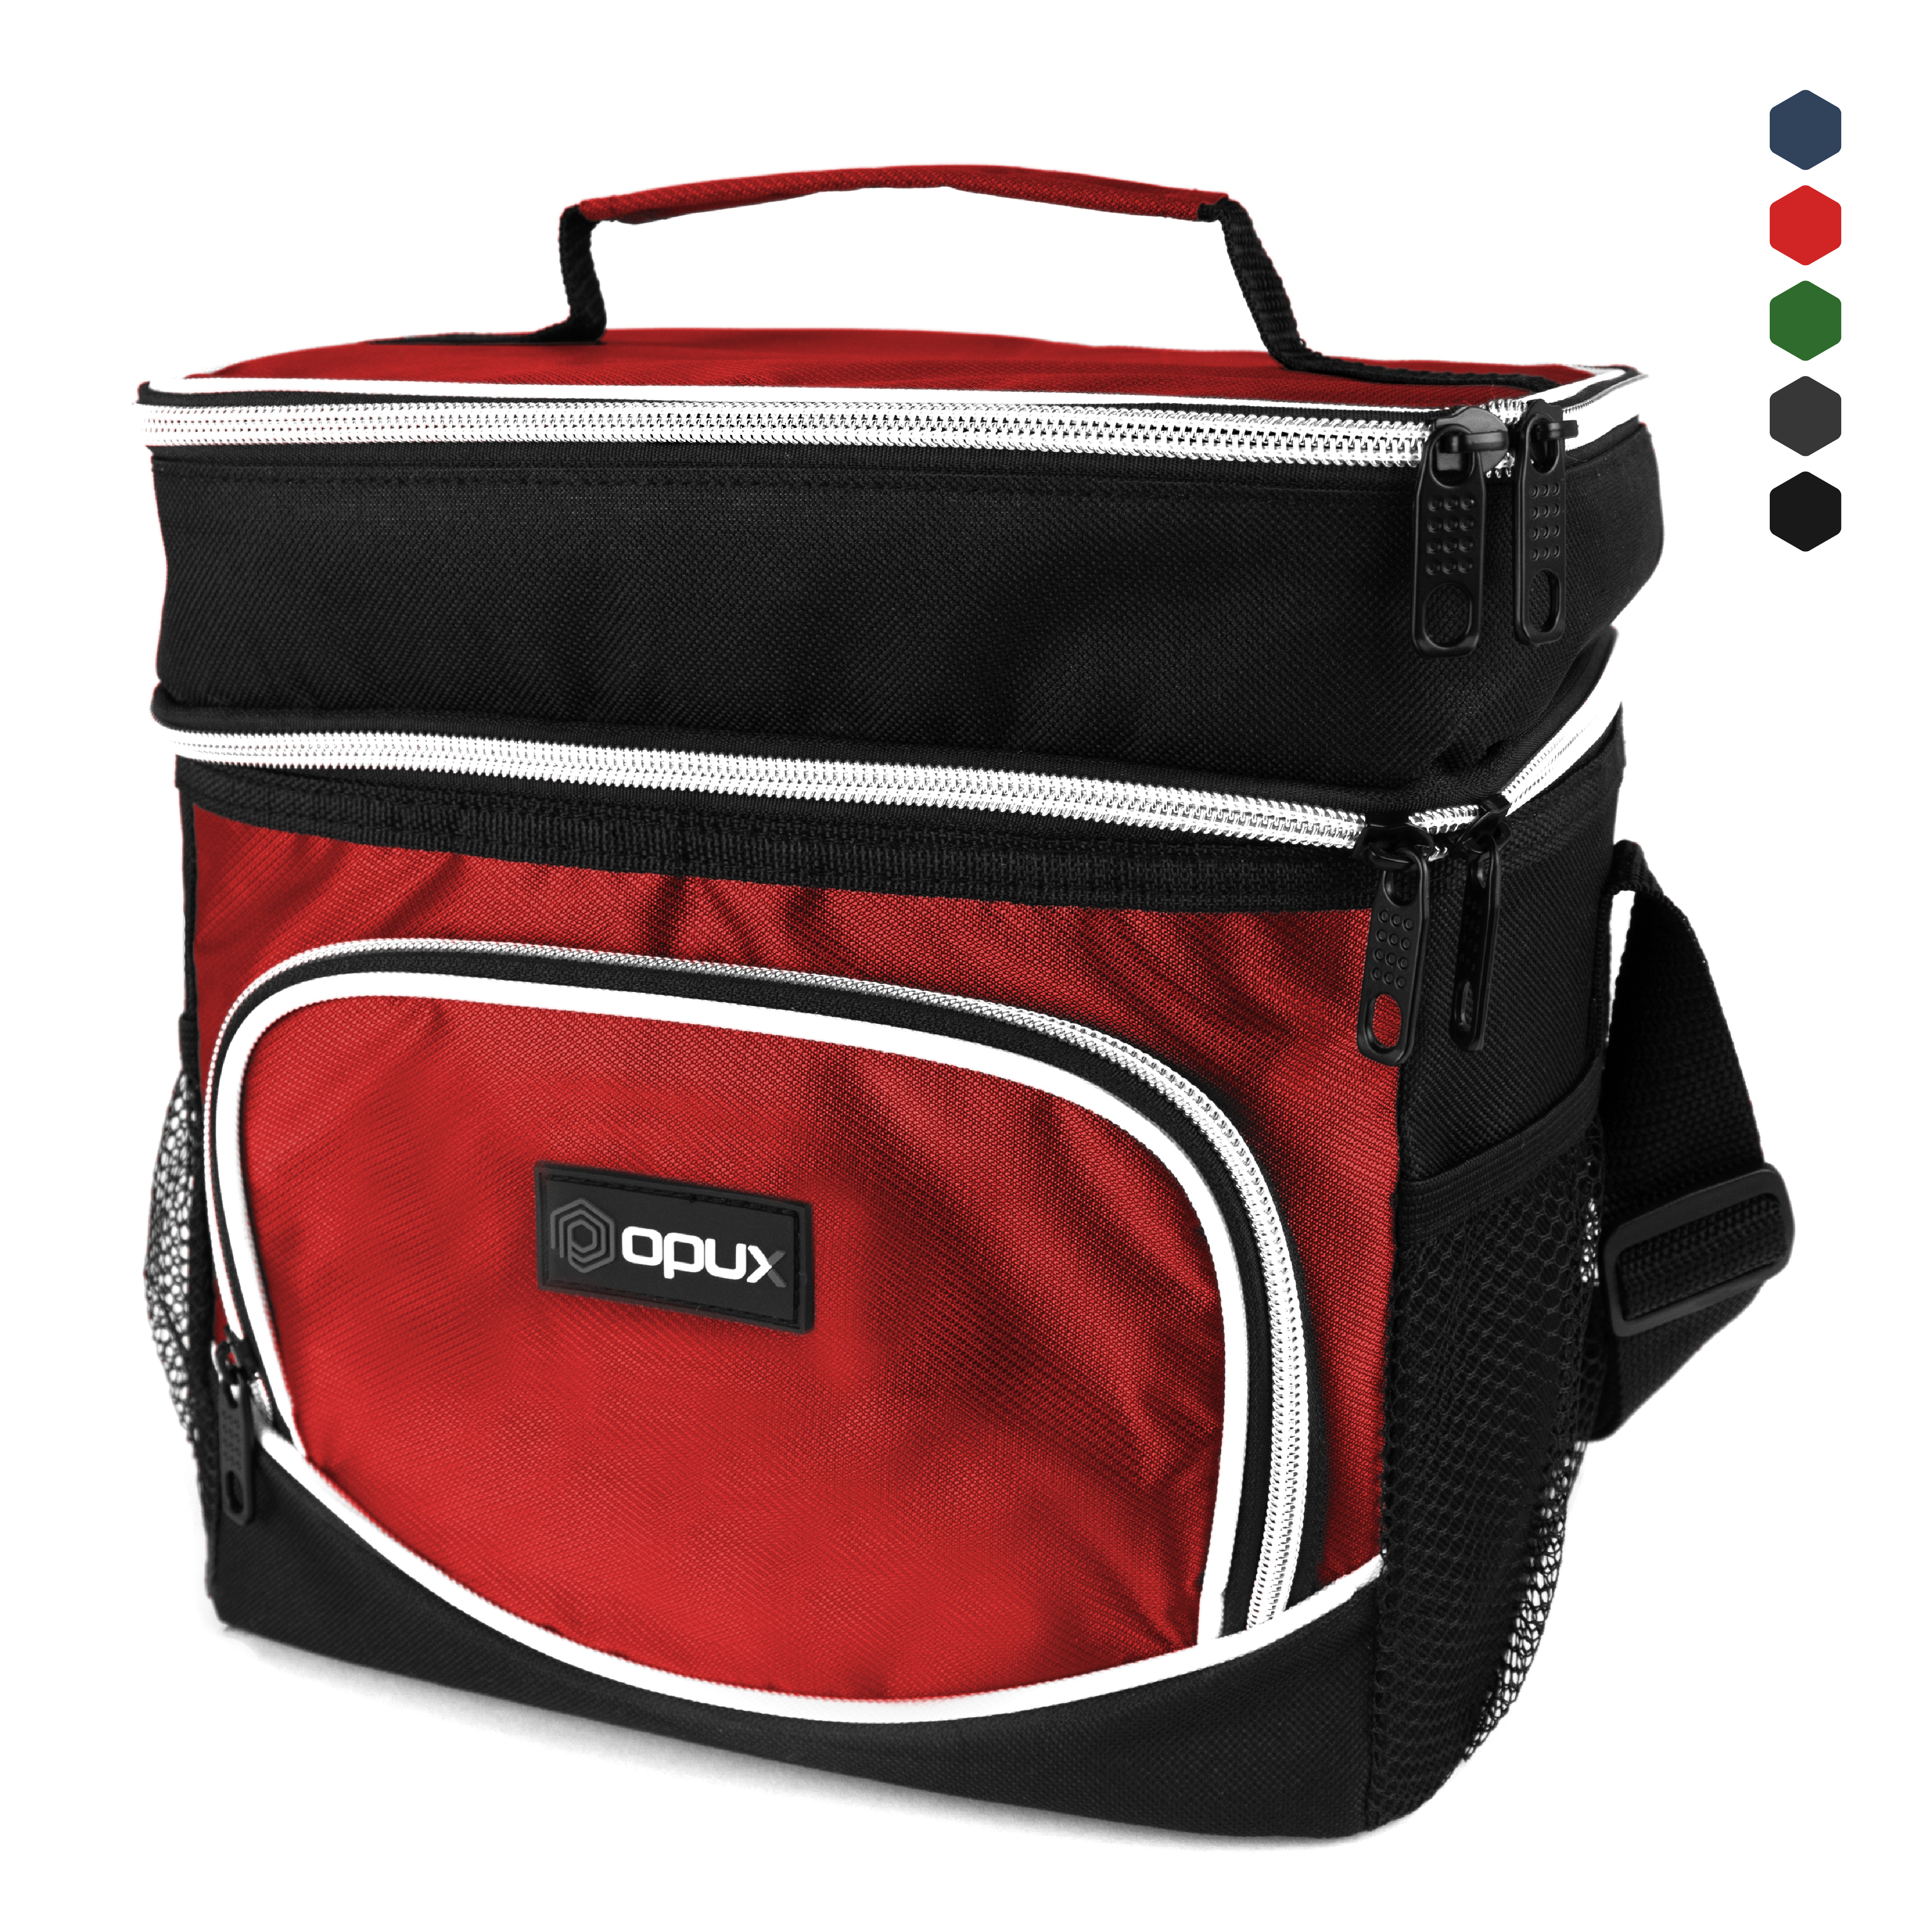 Premium Insulated Dual Compartment Lunch Bag by OPUX - Navy